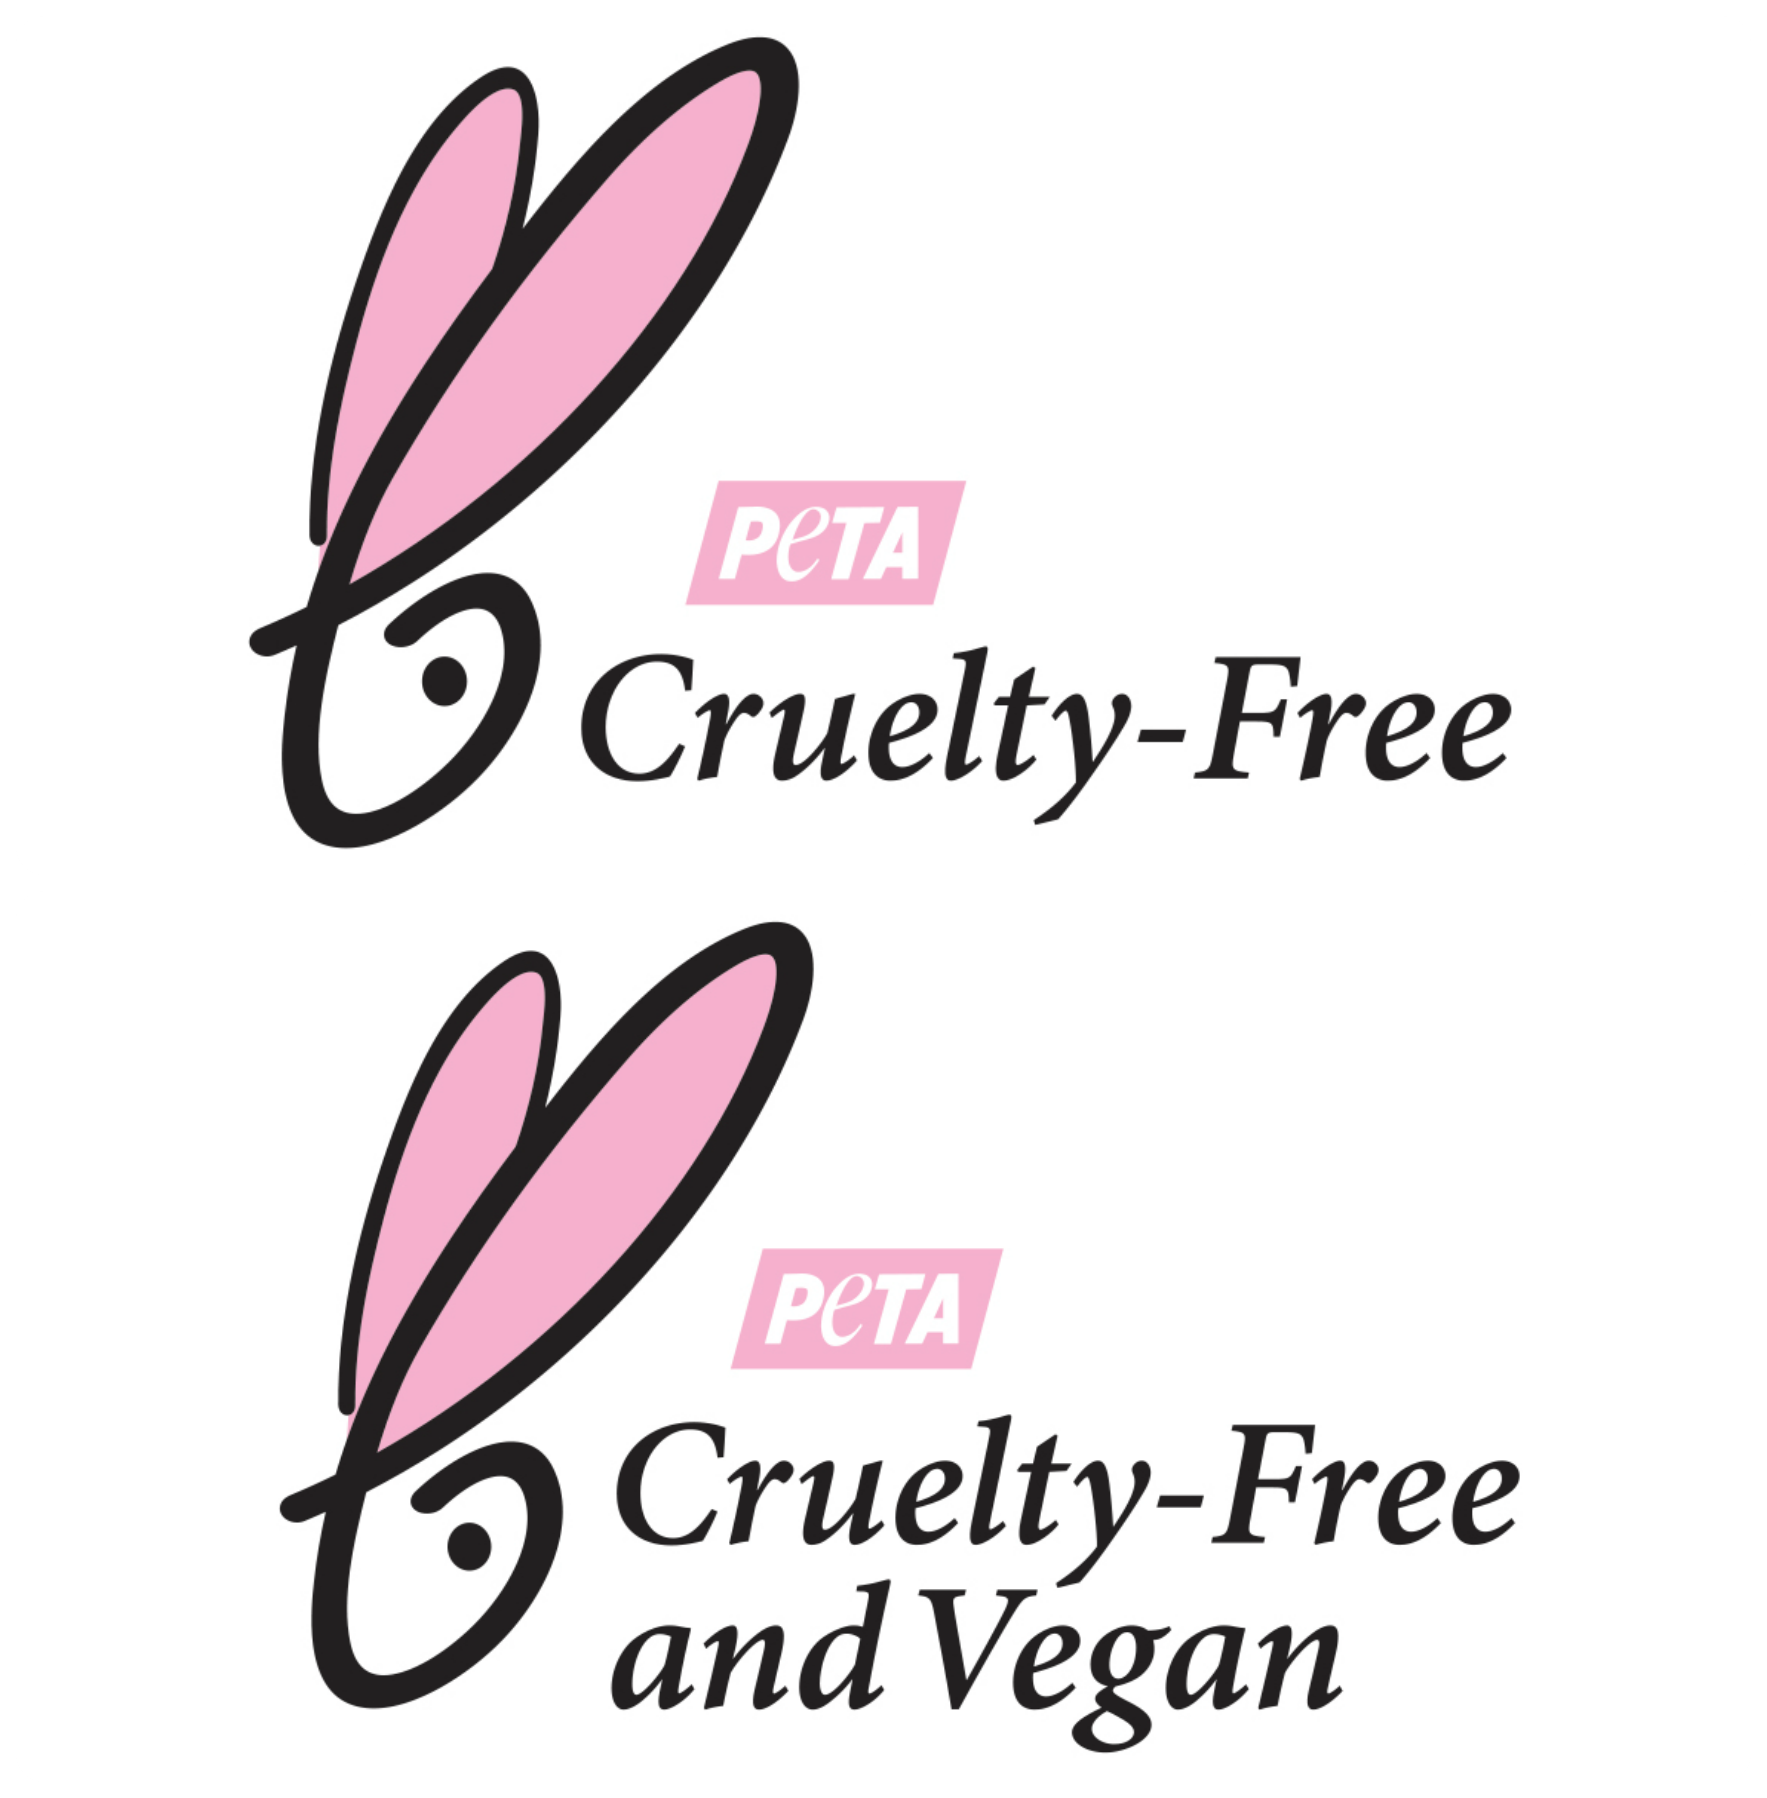 Any books that support animal testing?